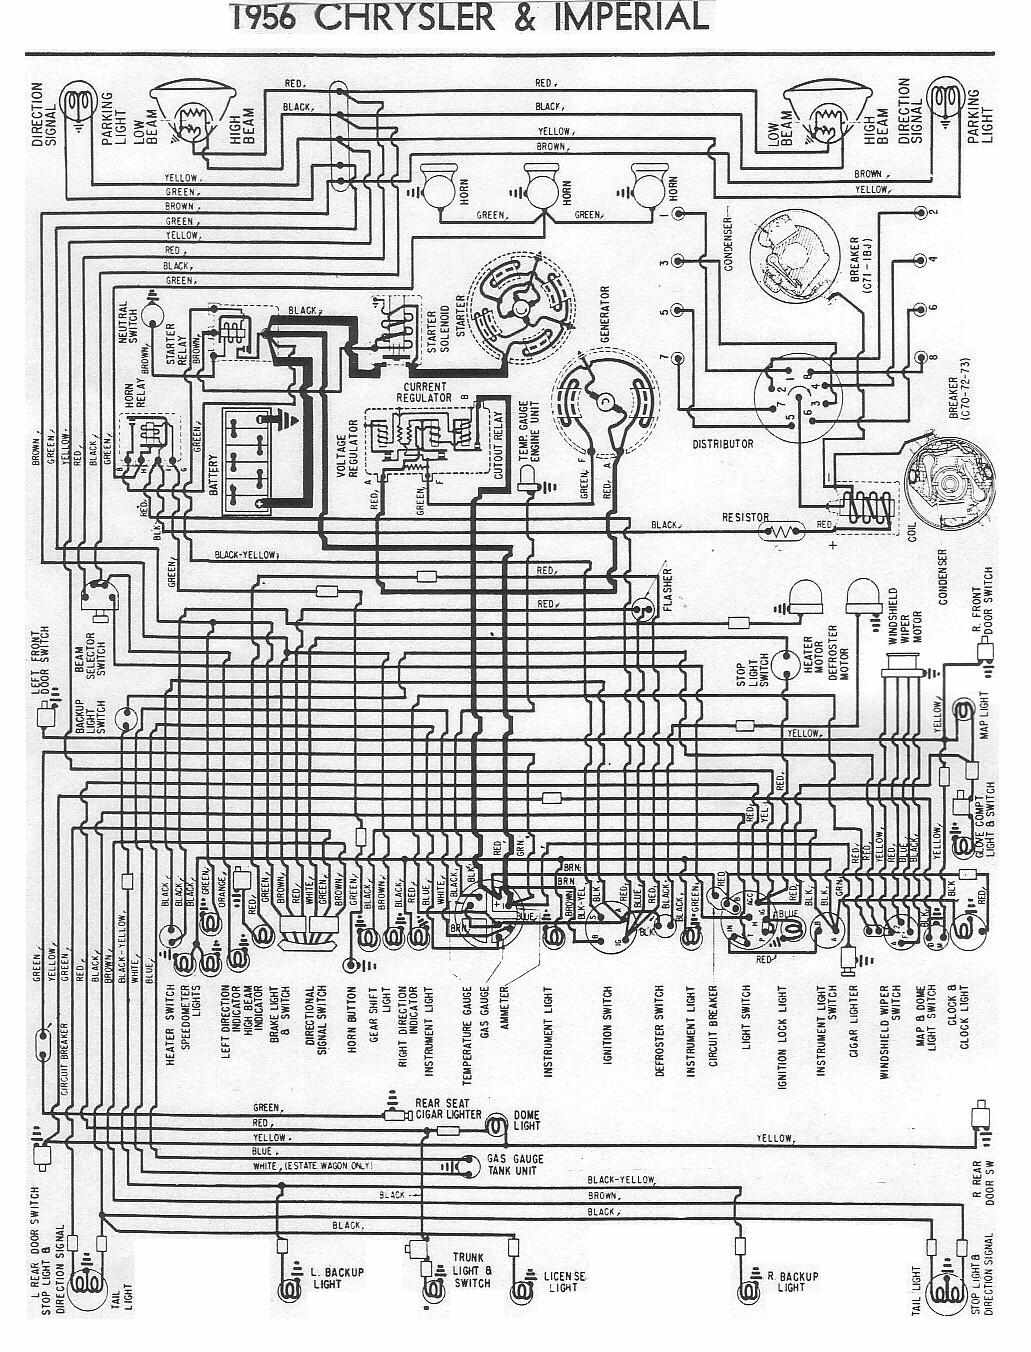 small resolution of 1956 chrysler wiring diagram wiring diagram gowiring diagram of 1956 chrysler and imperial circuit wiring wiring